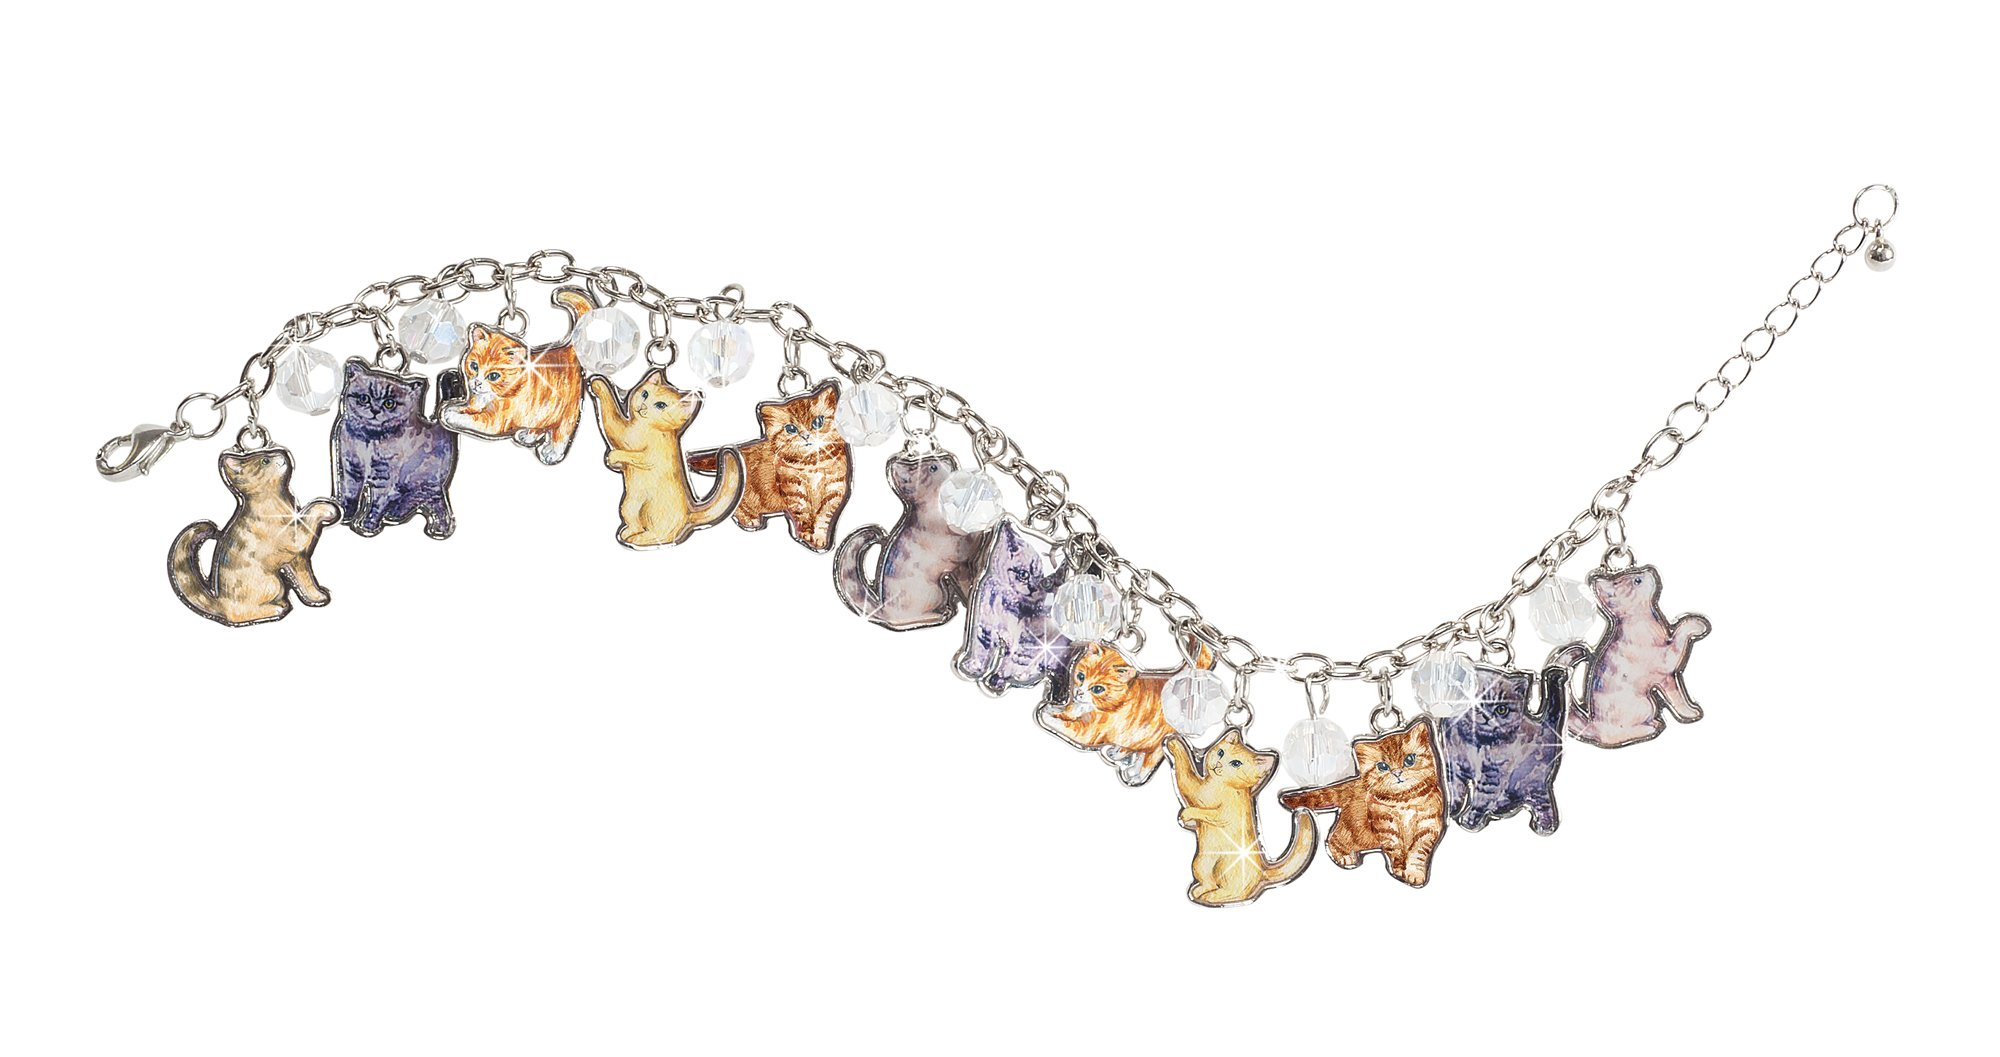 The Paragon Women's Bracelet - Cat Lovers Charm Bracelet, Playful Kitty Adjustable Link Jewelry by The Paragon